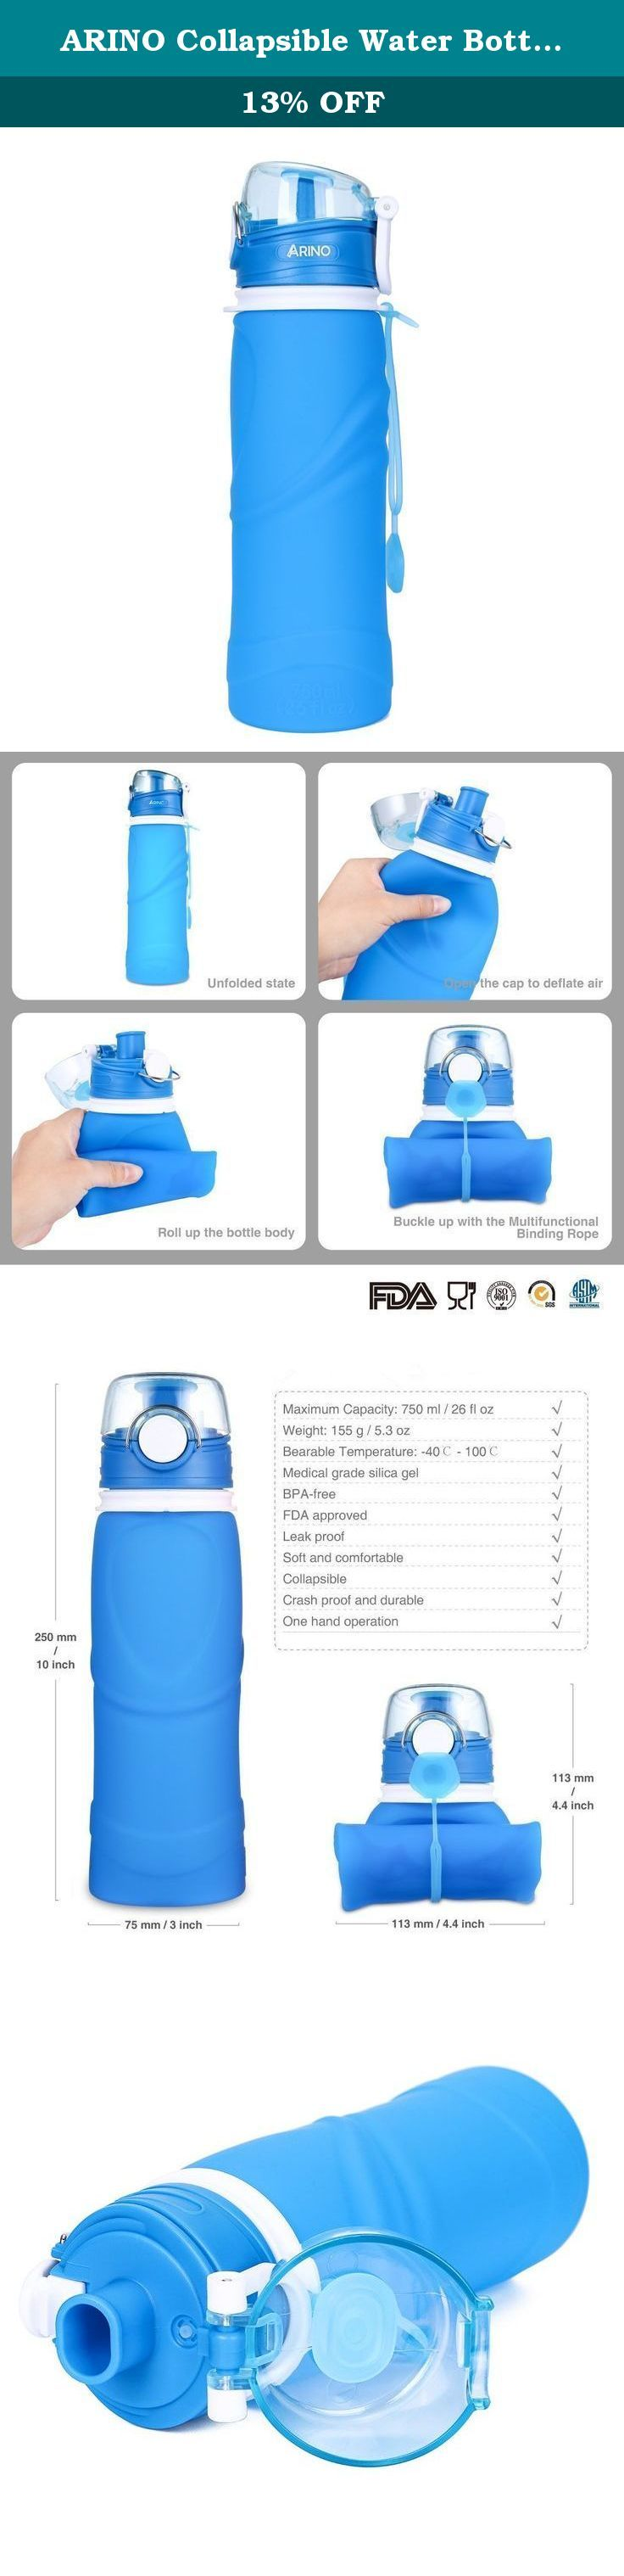 ARINO Collapsible Water Bottle Sports Water Bottle Foldable Portable Lightweight Bpa Free Leak Proof Heat and Freeze Resistant FDA Approved 750ml Blue. Foldable Water Bottle, Save Space : this water bottle can be folded, rolled or flattened when empty and stands when full.It can be Folded down to small size to easily fit in your pocket pack and nearly anywhere. Bpa Free Water Bottles, Non-Toxic and No Smell, Safe Certified By FDA LFGB SGS: The water bottles are made of great quality of...